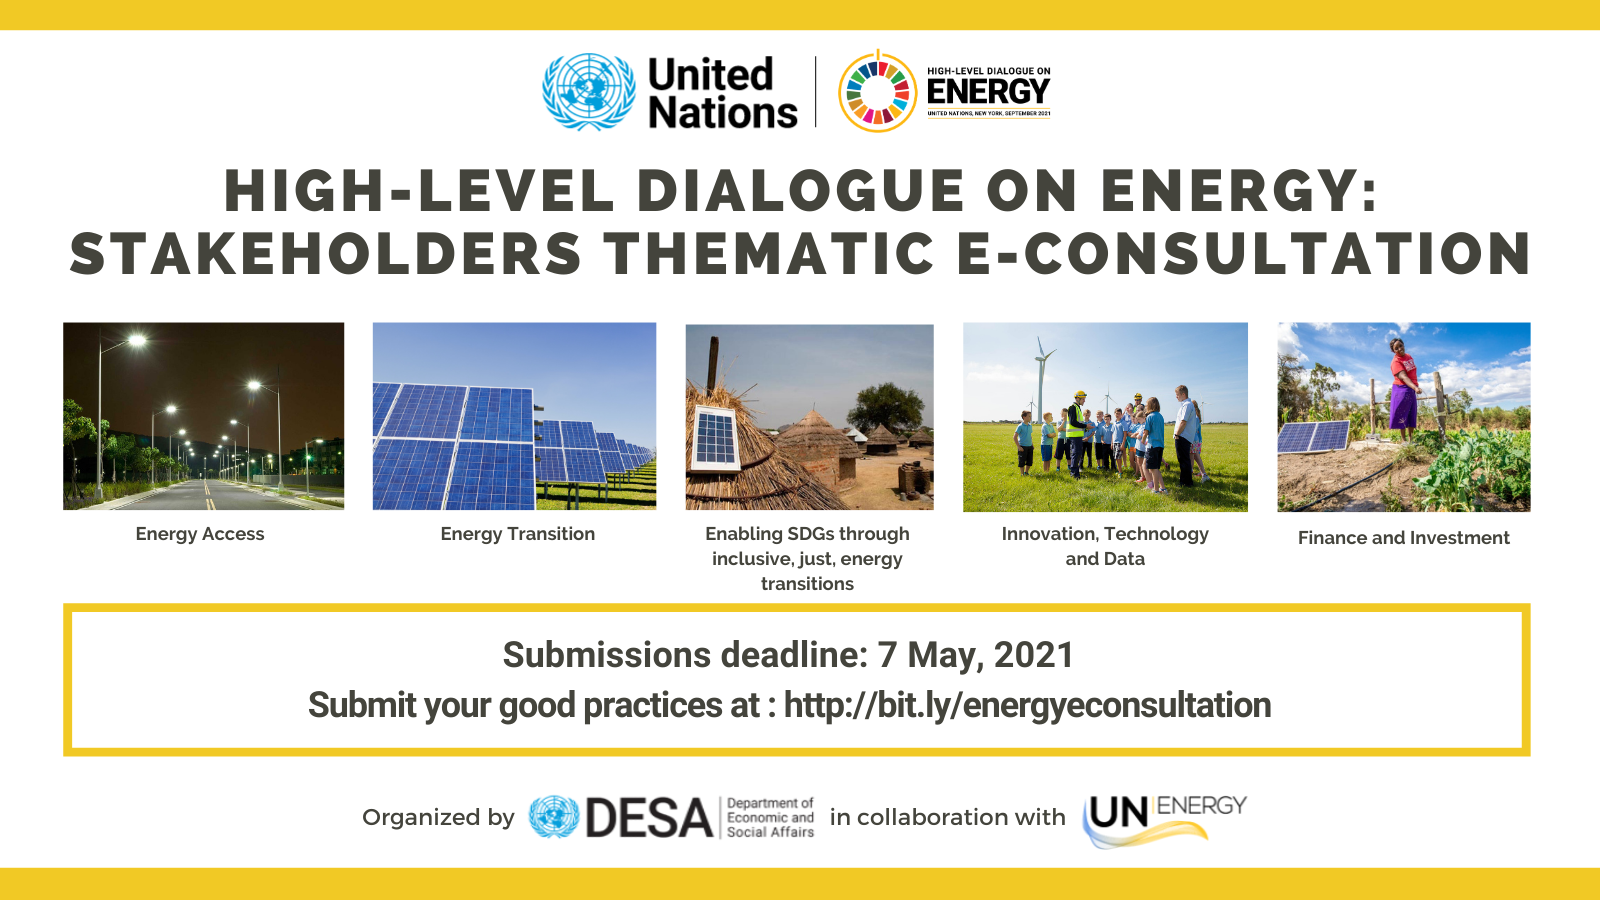 Digital card showing the 5 themes of the High Level Dialogue on Energy